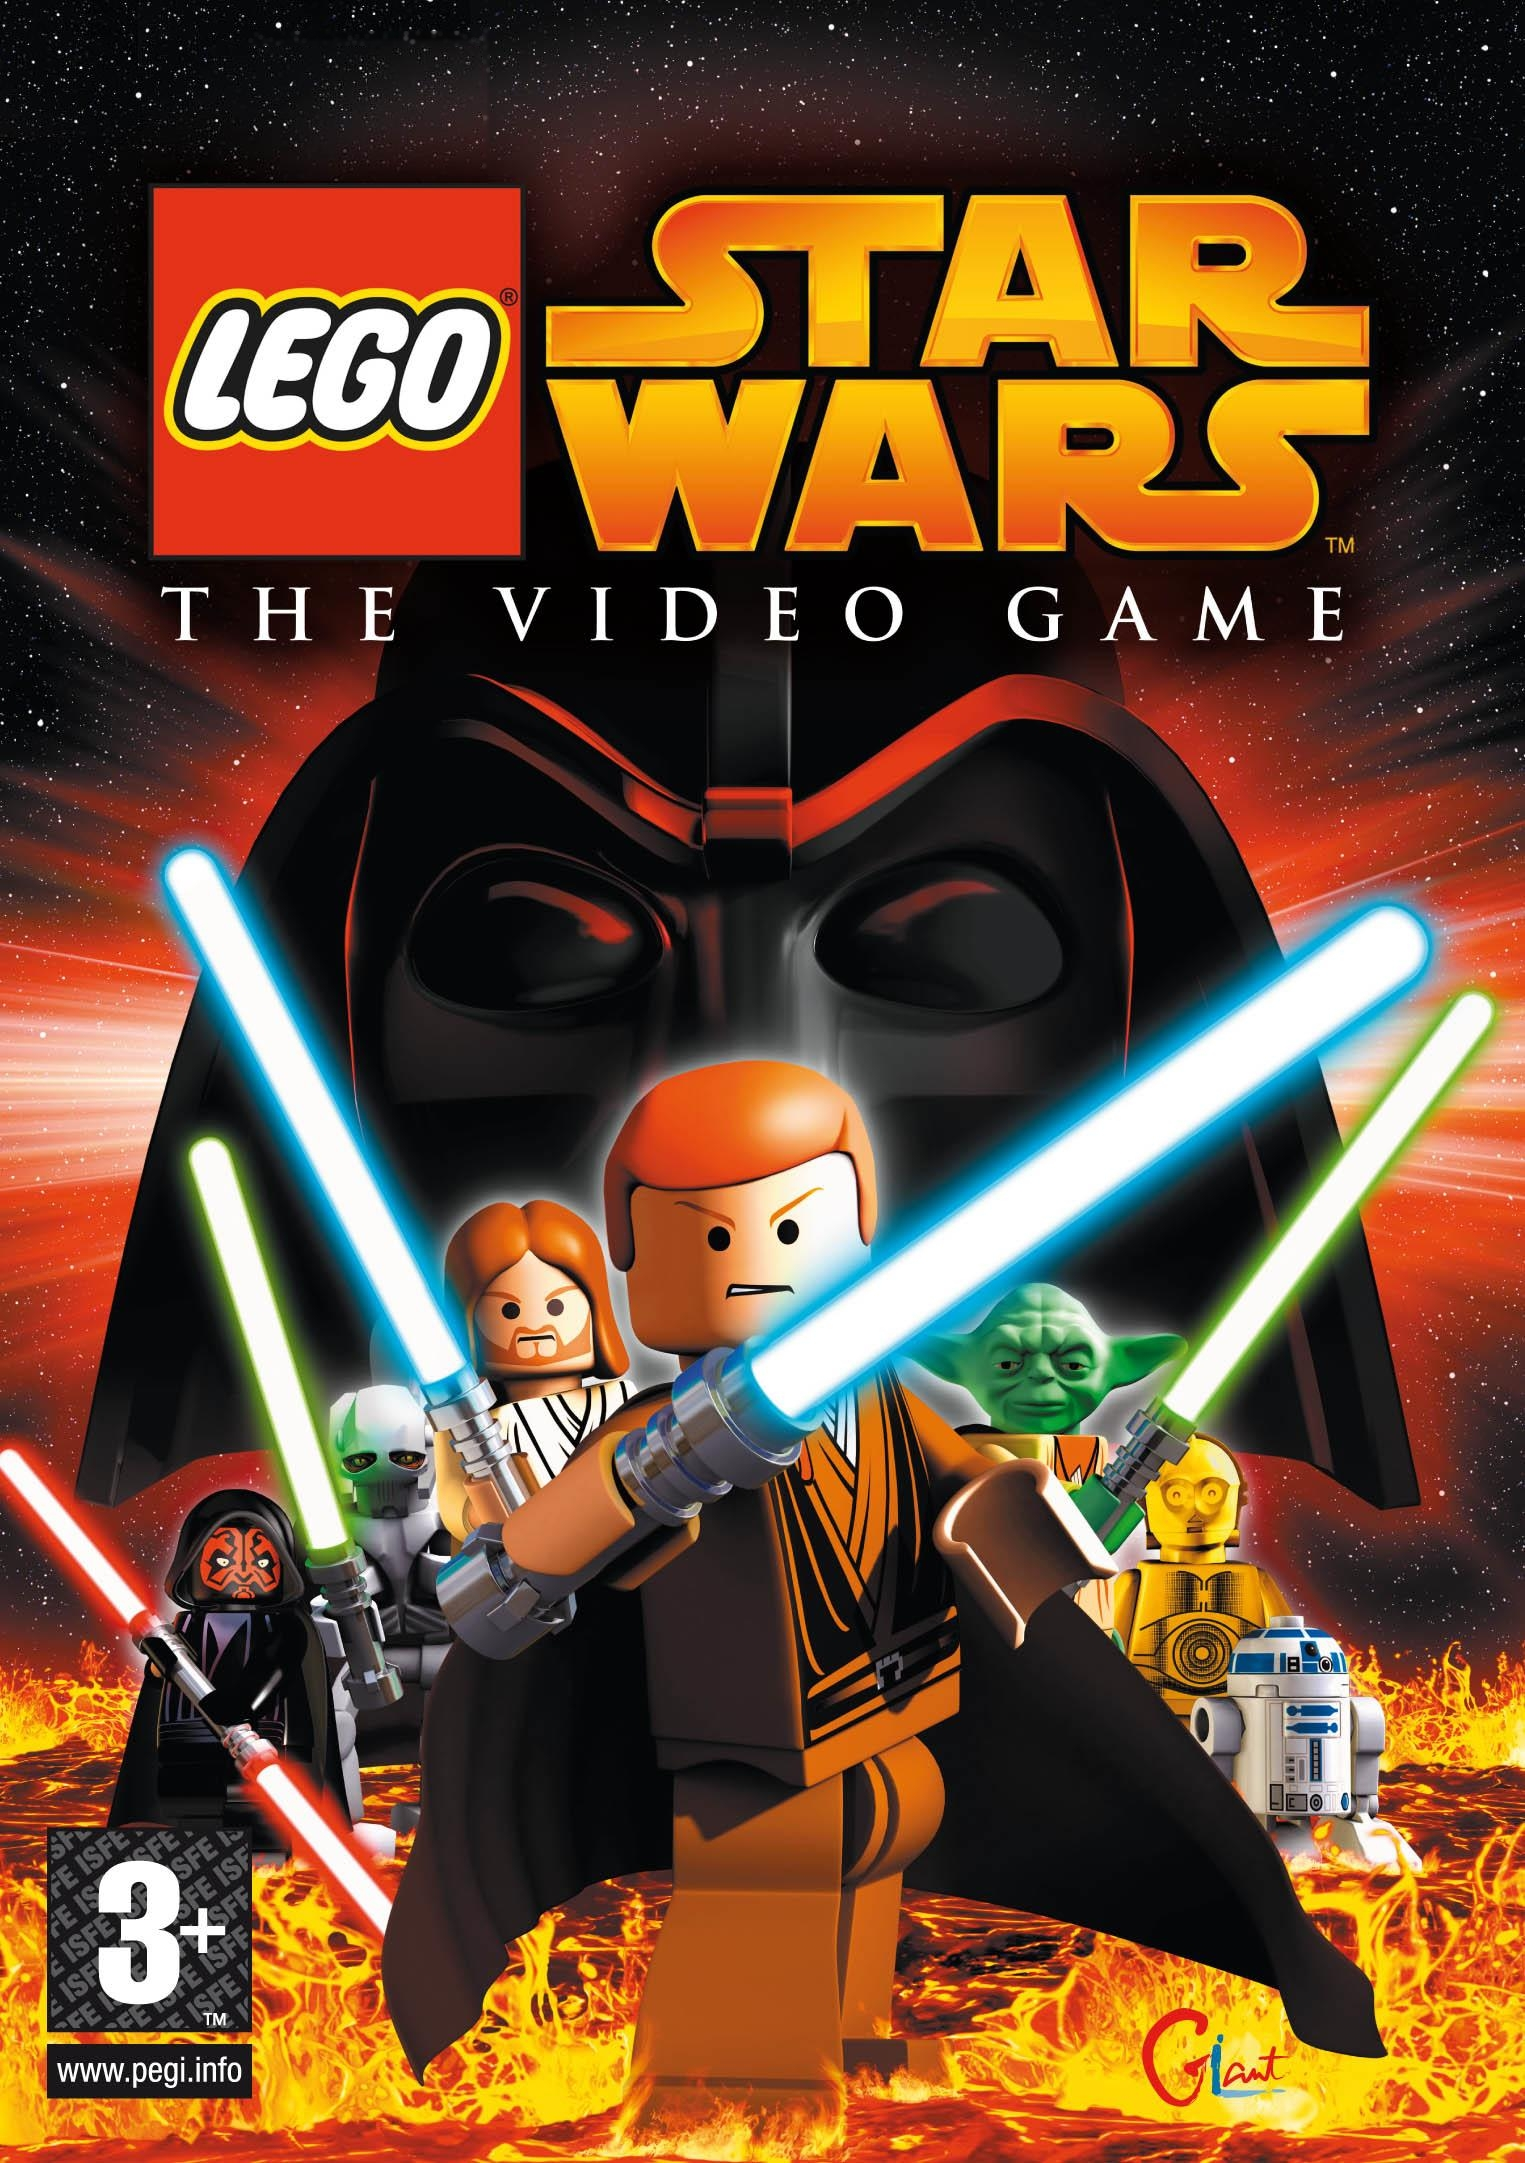 Star Wars Video Game 30